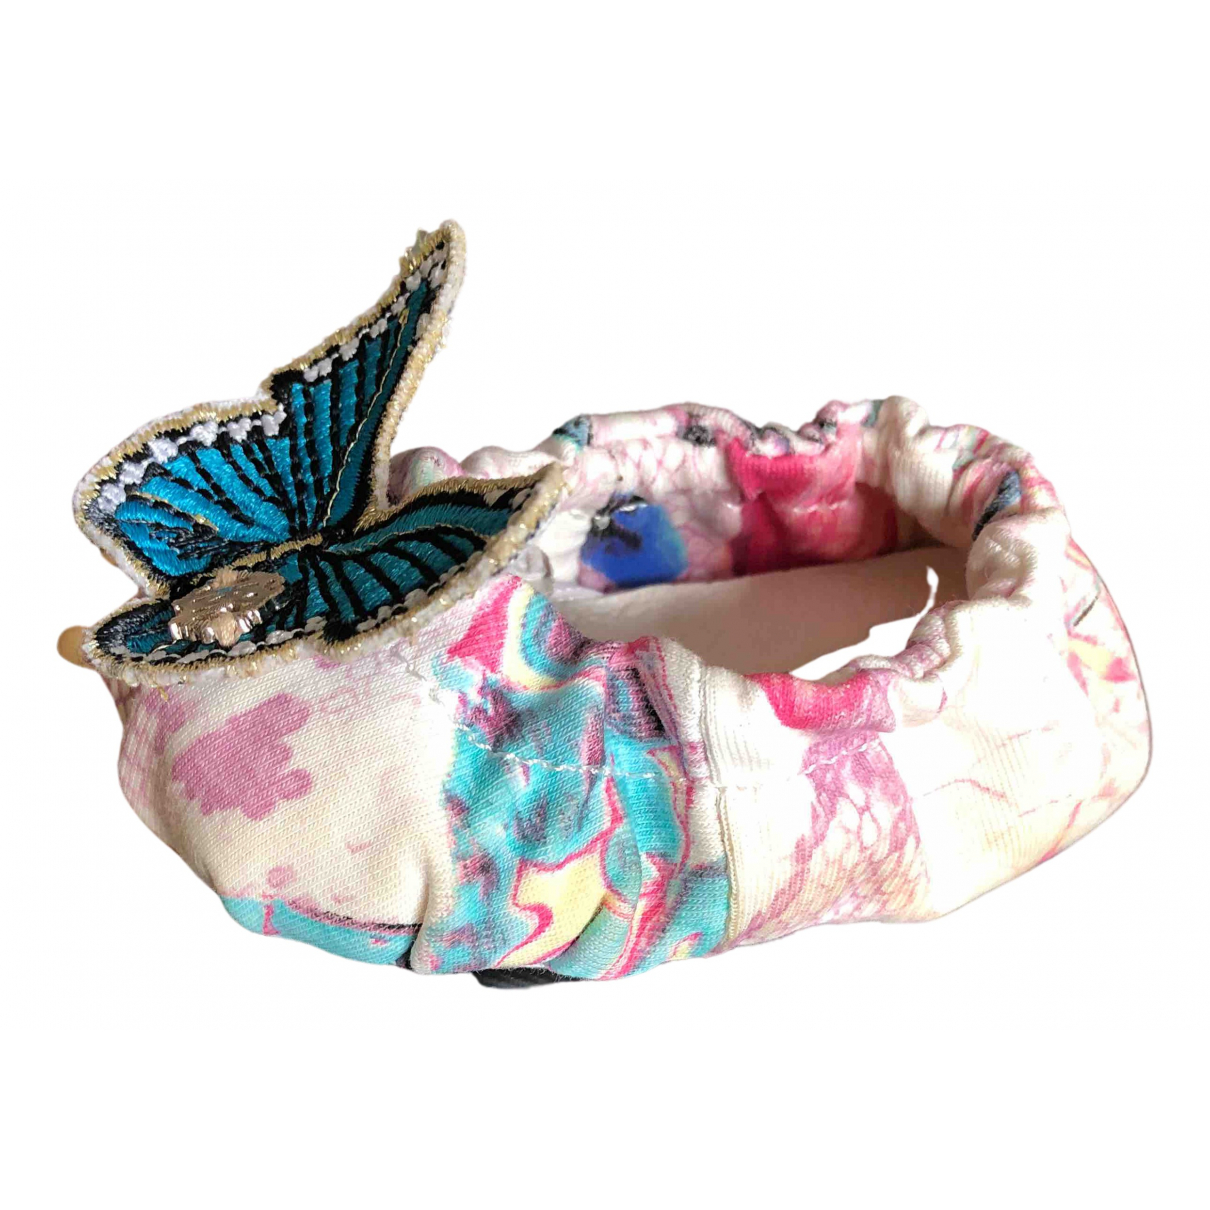 Roberto Cavalli N Pink Cloth First shoes for Kids 17 FR